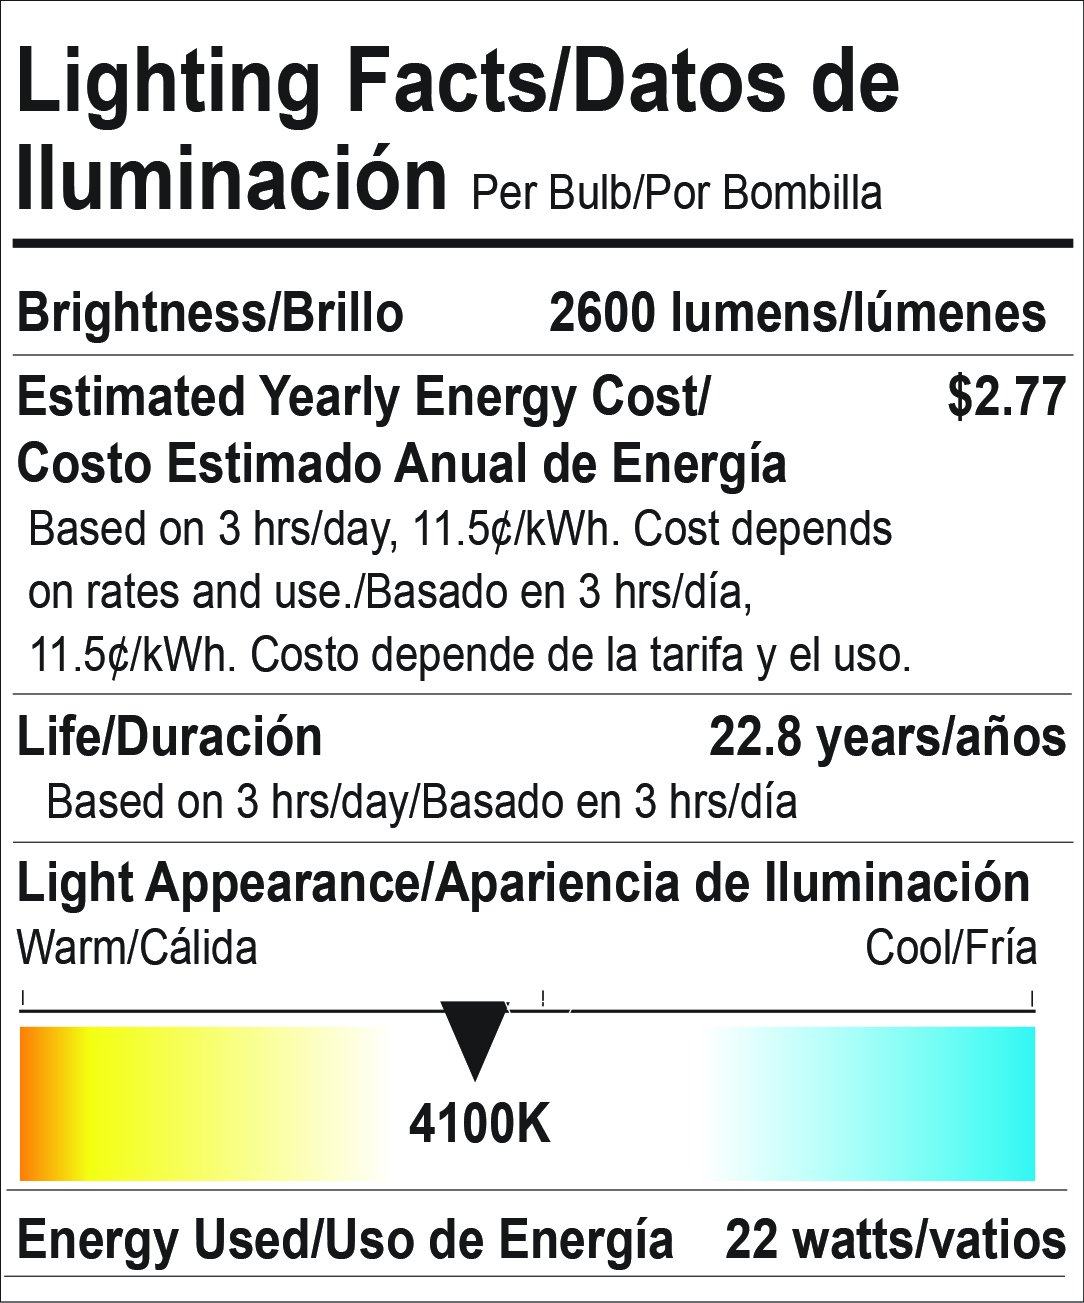 Goodlite G-19865 22W (150W Equivalent) 2600 Lm, Dimmable A21 LED Bulb with 240° Beam Angle, E26 Base, Cool White 4100k